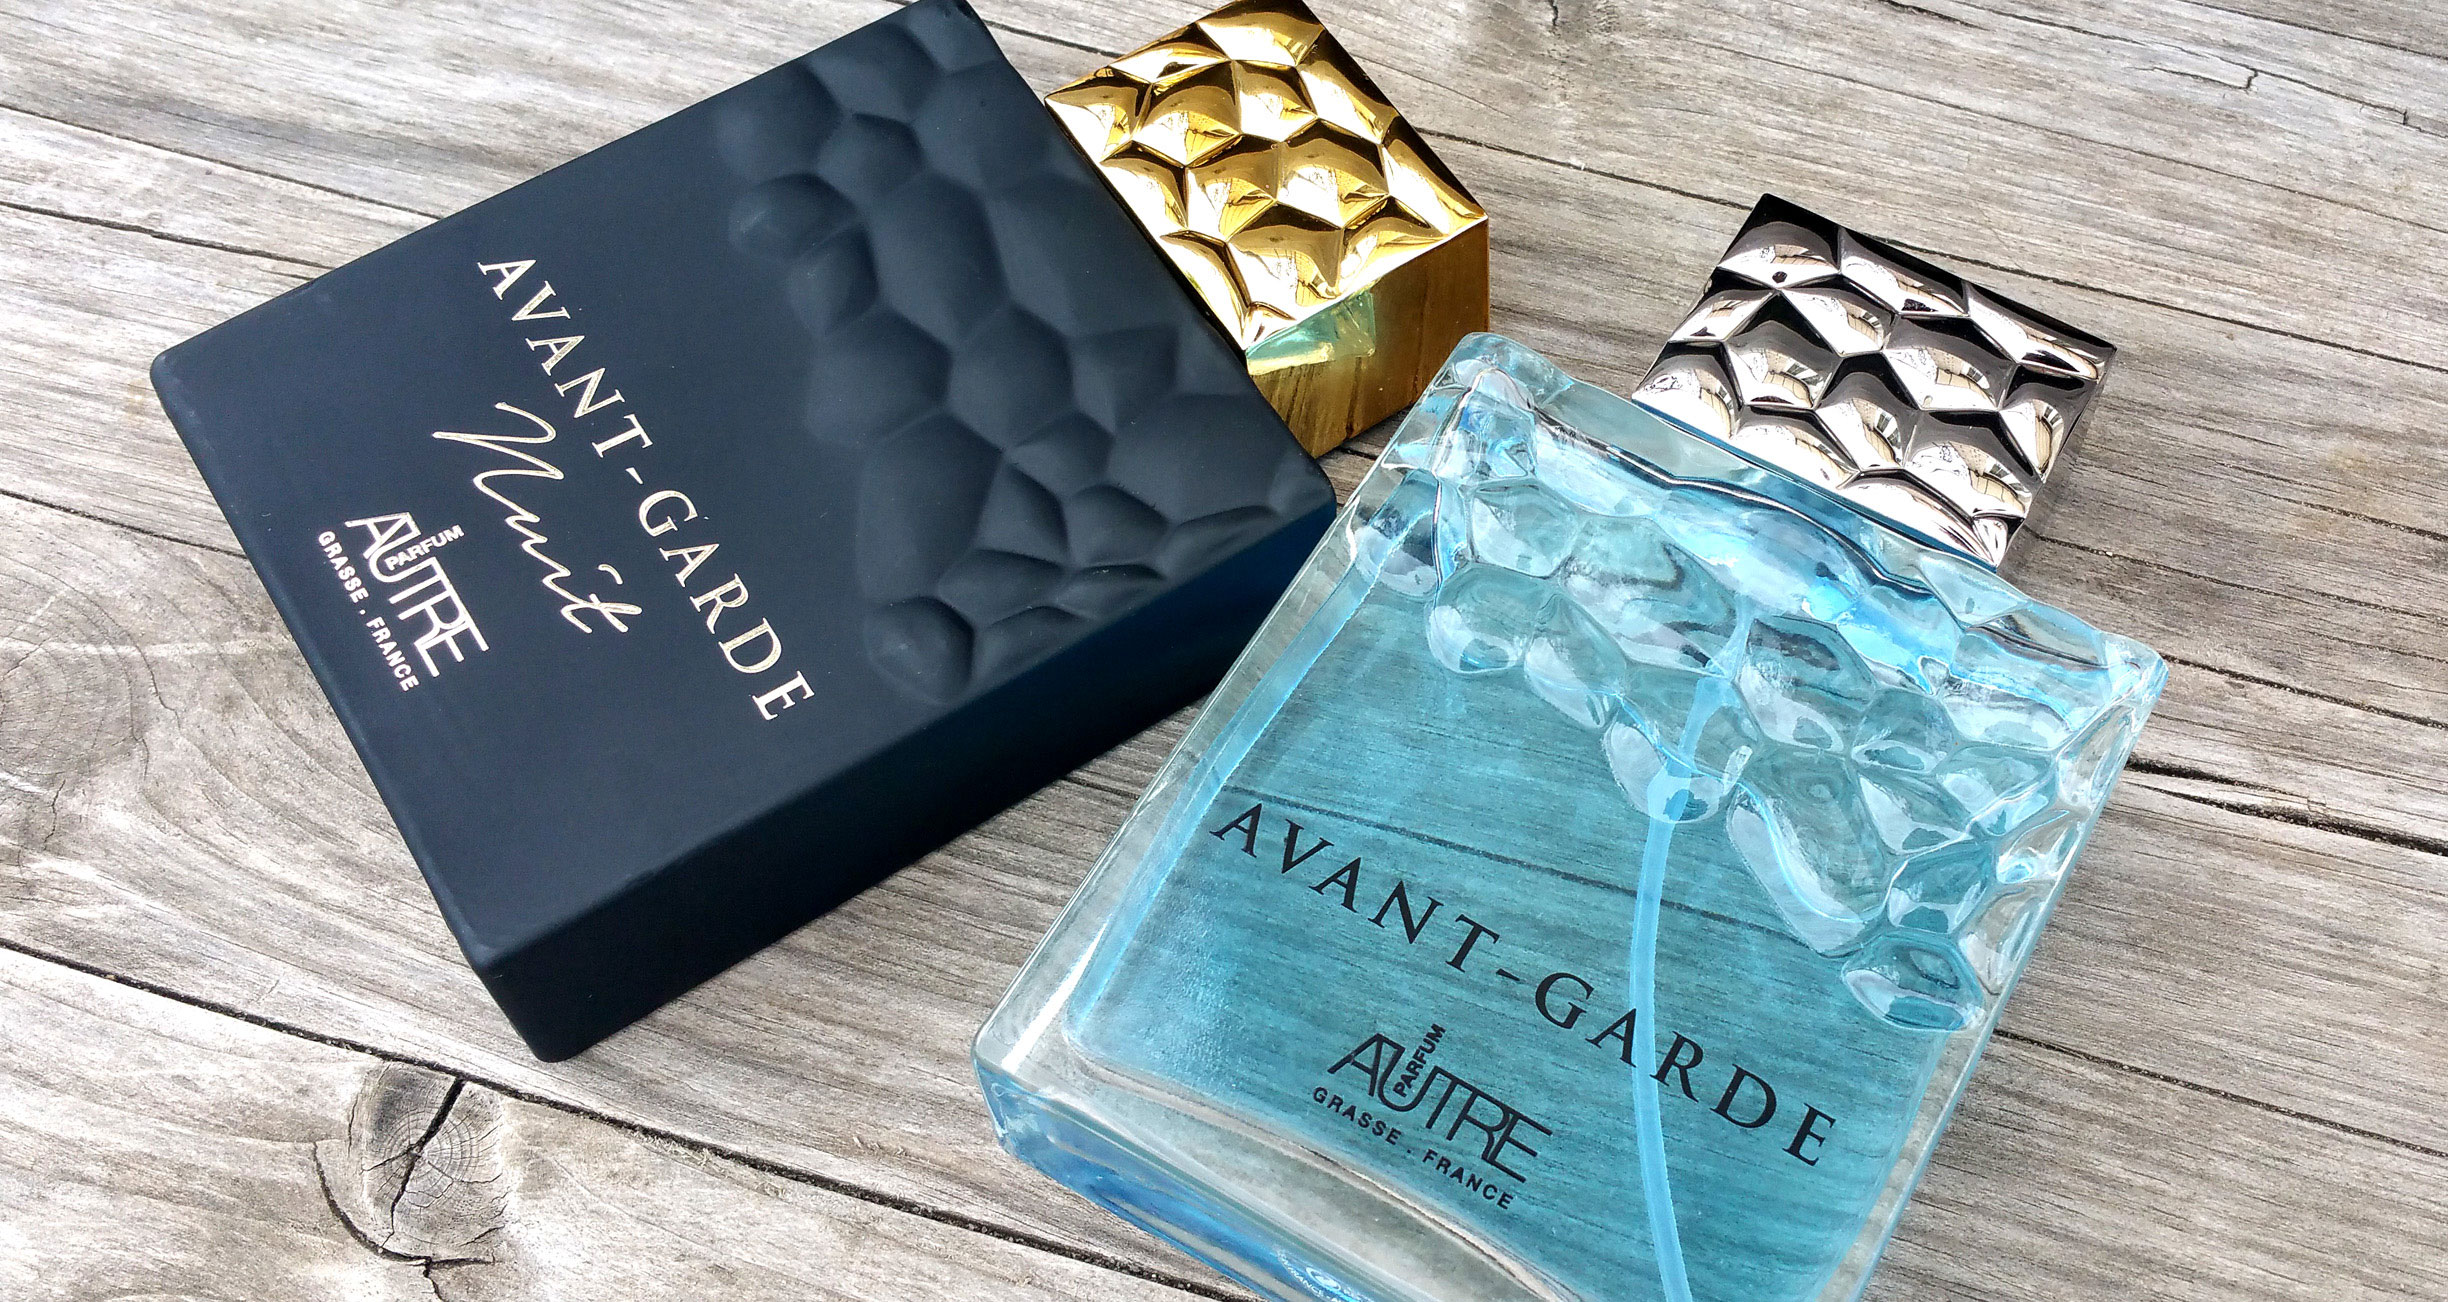 Bottle concept, packaging and photo-series for Avant-Garde and Avant-Garde Nuit fragrances. By Color.zone creative agency.